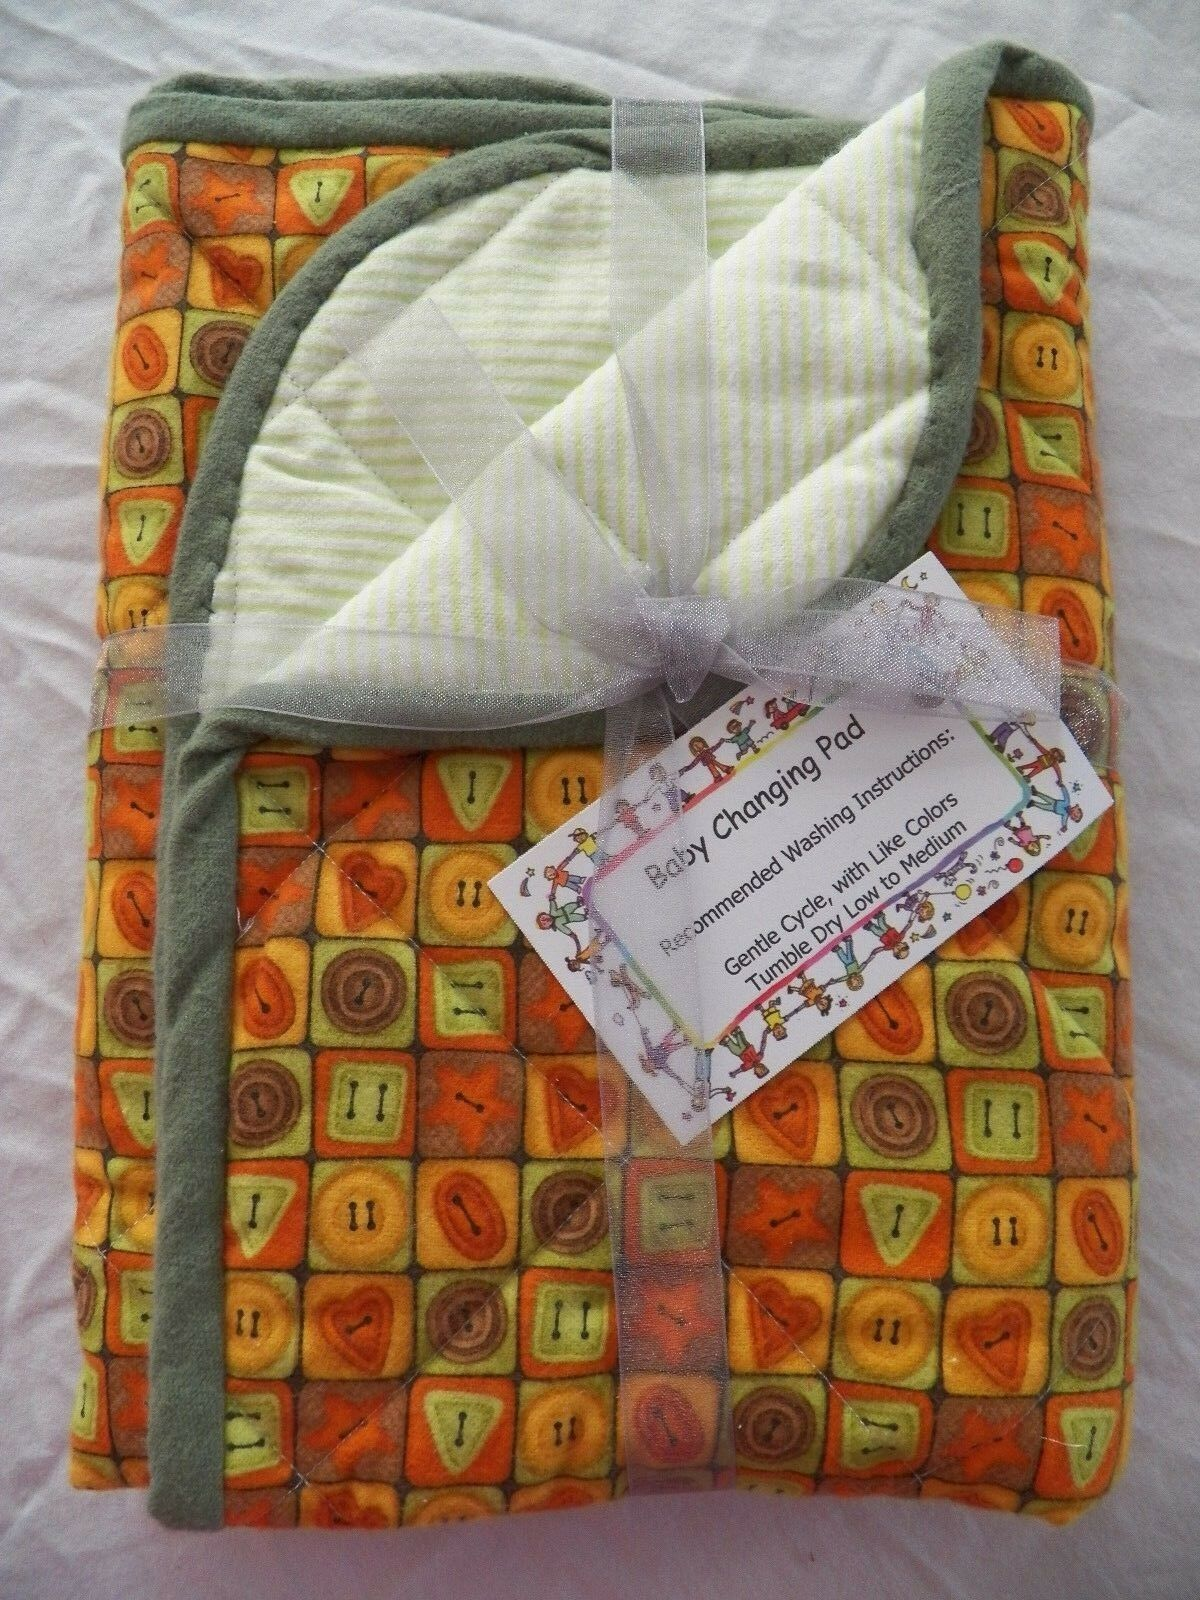 BABY CHANGING PAD Portable Diaper Travel Mat Cotton Washable Padded Handmade NEW 20